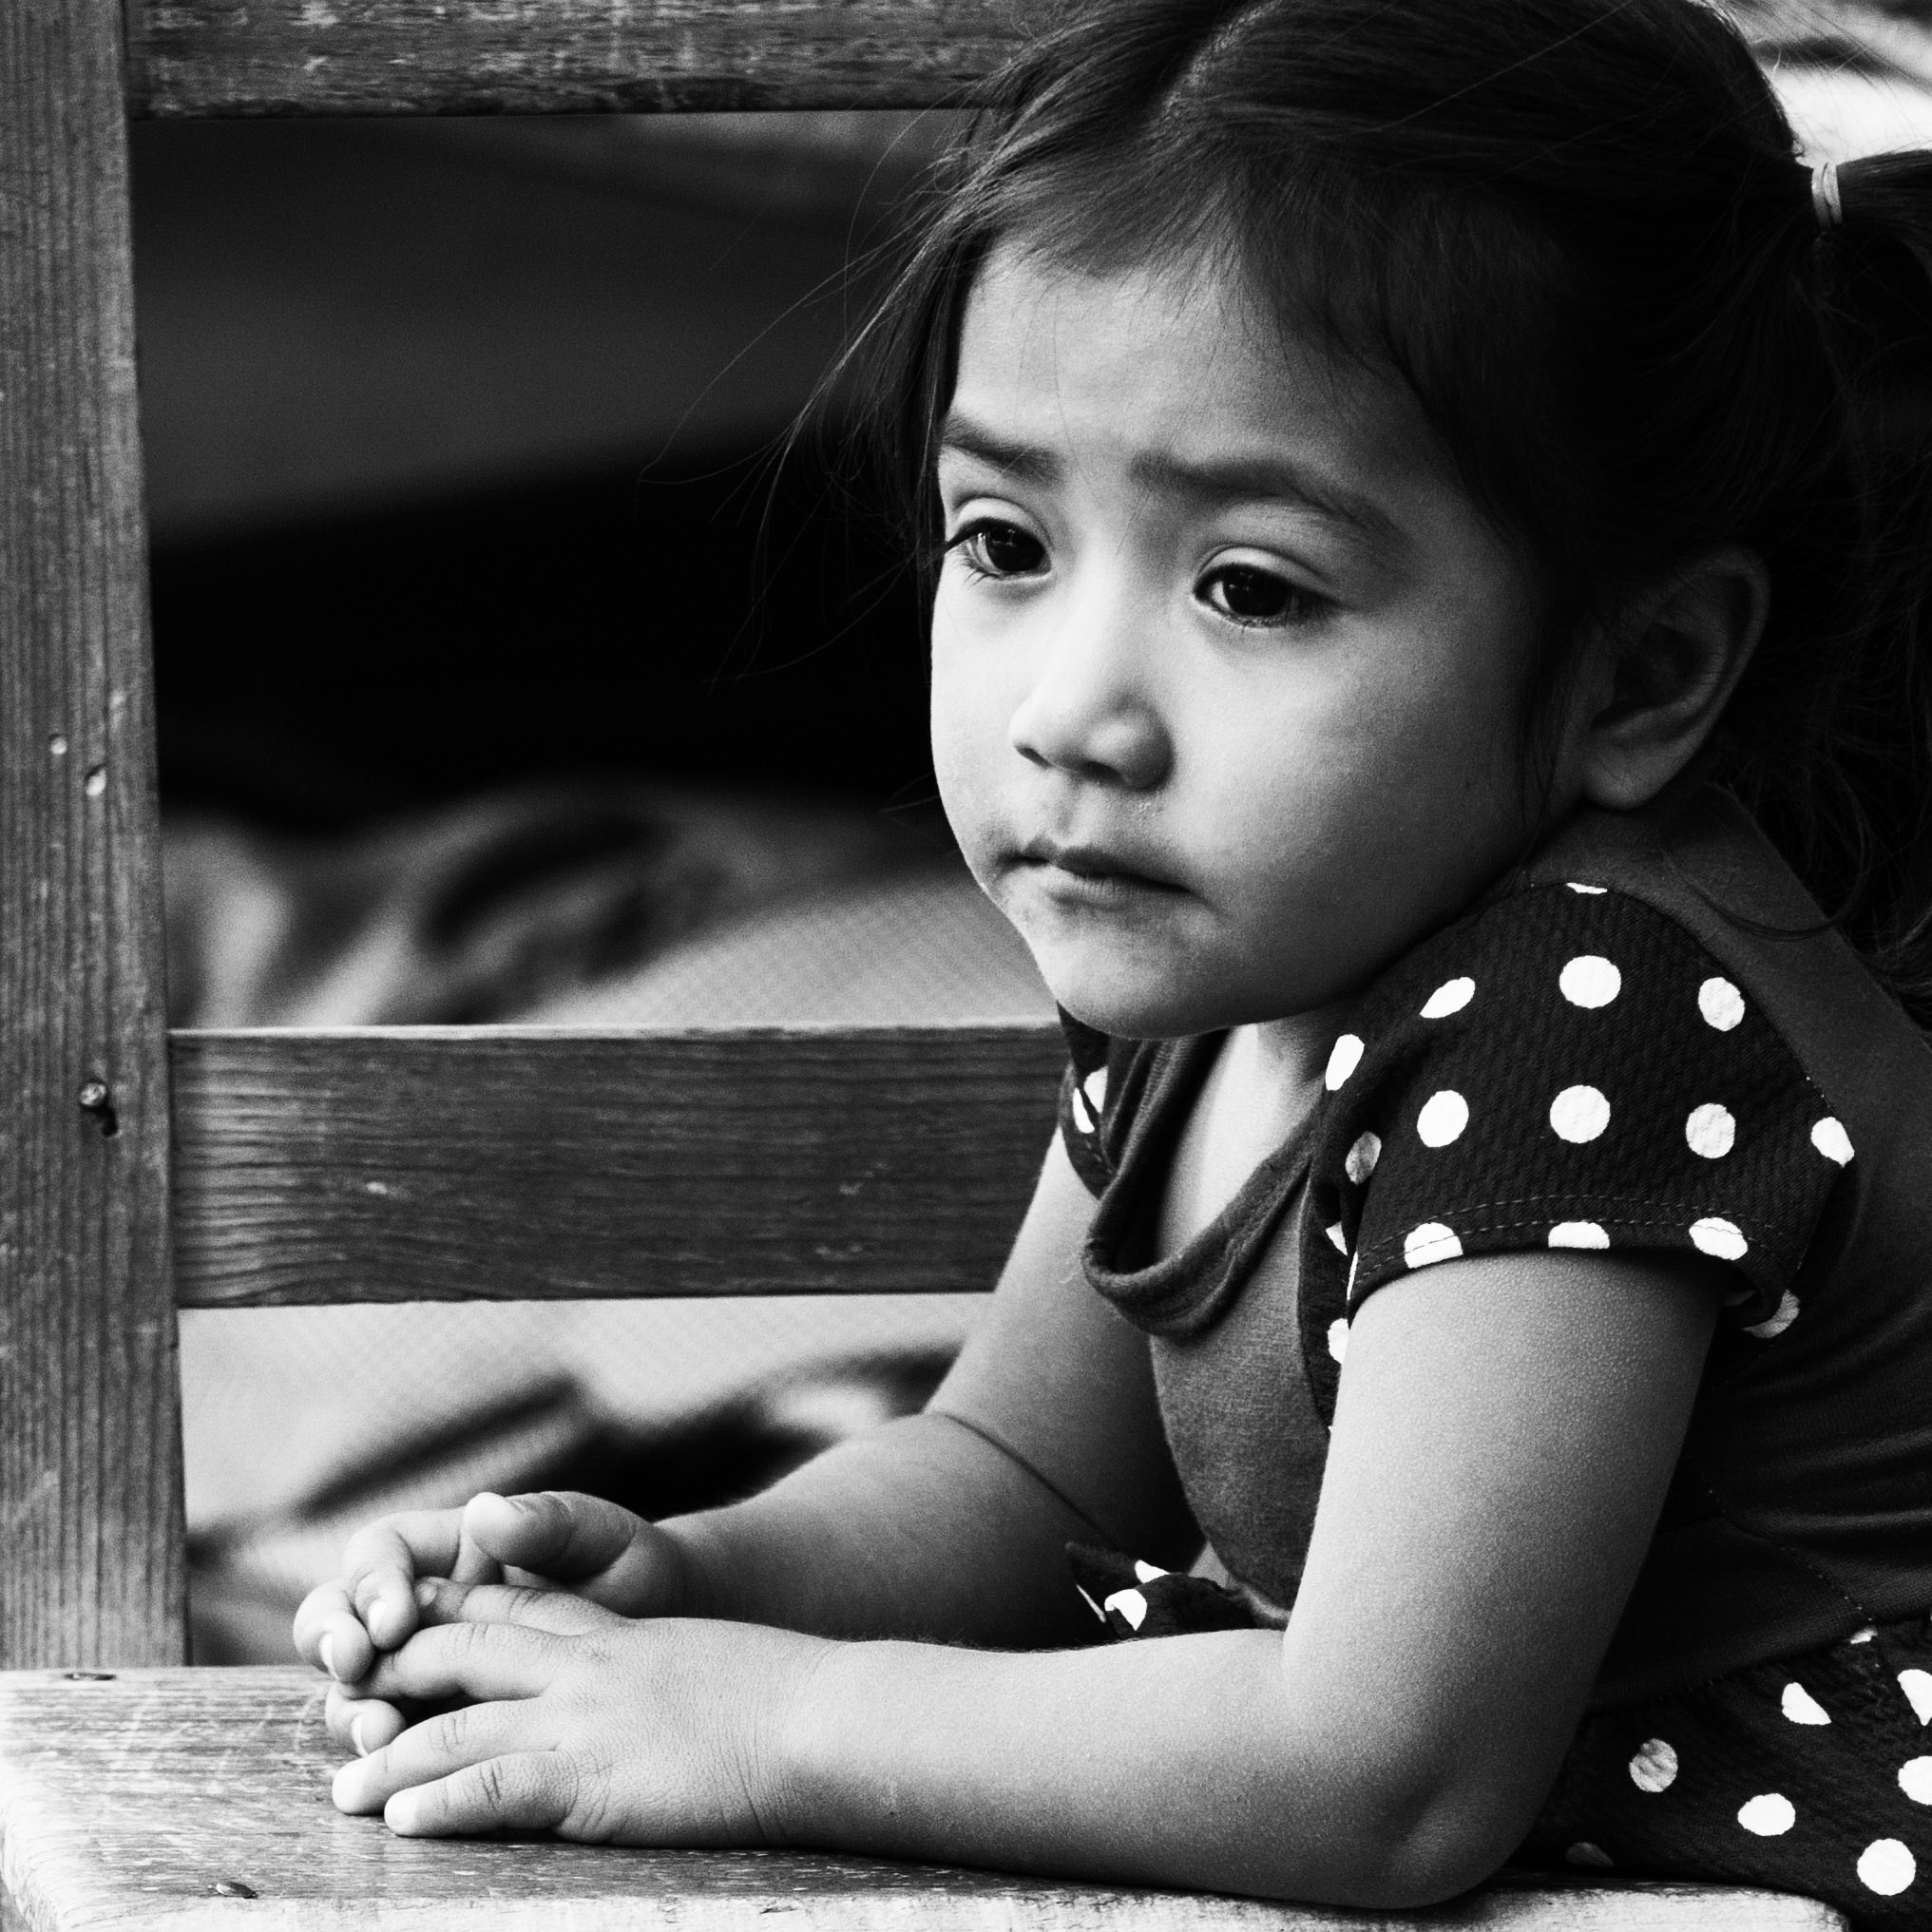 The thoughtful little girl...